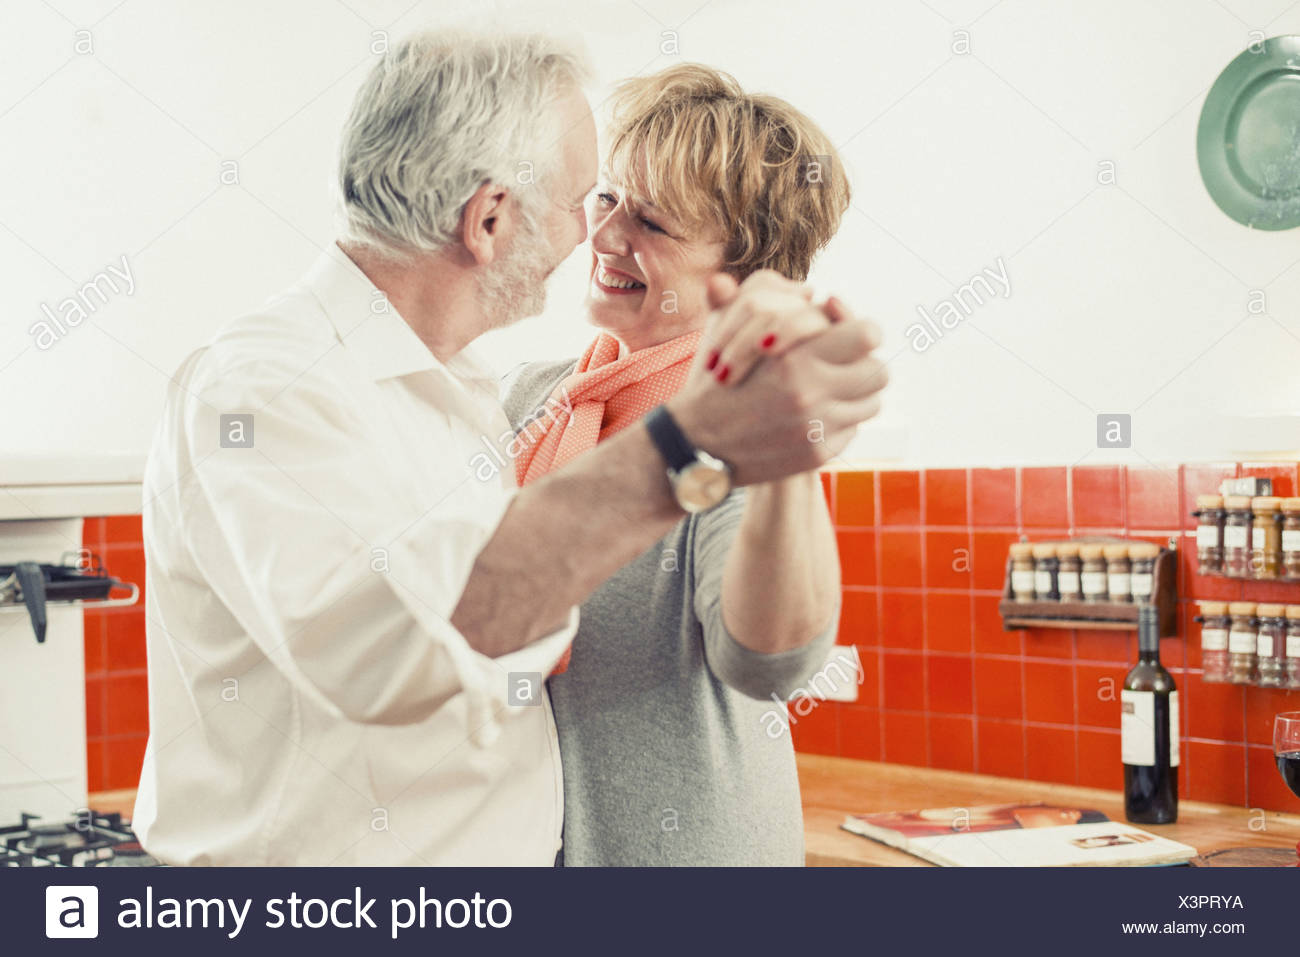 Couple dancing in kitchen Photo Stock